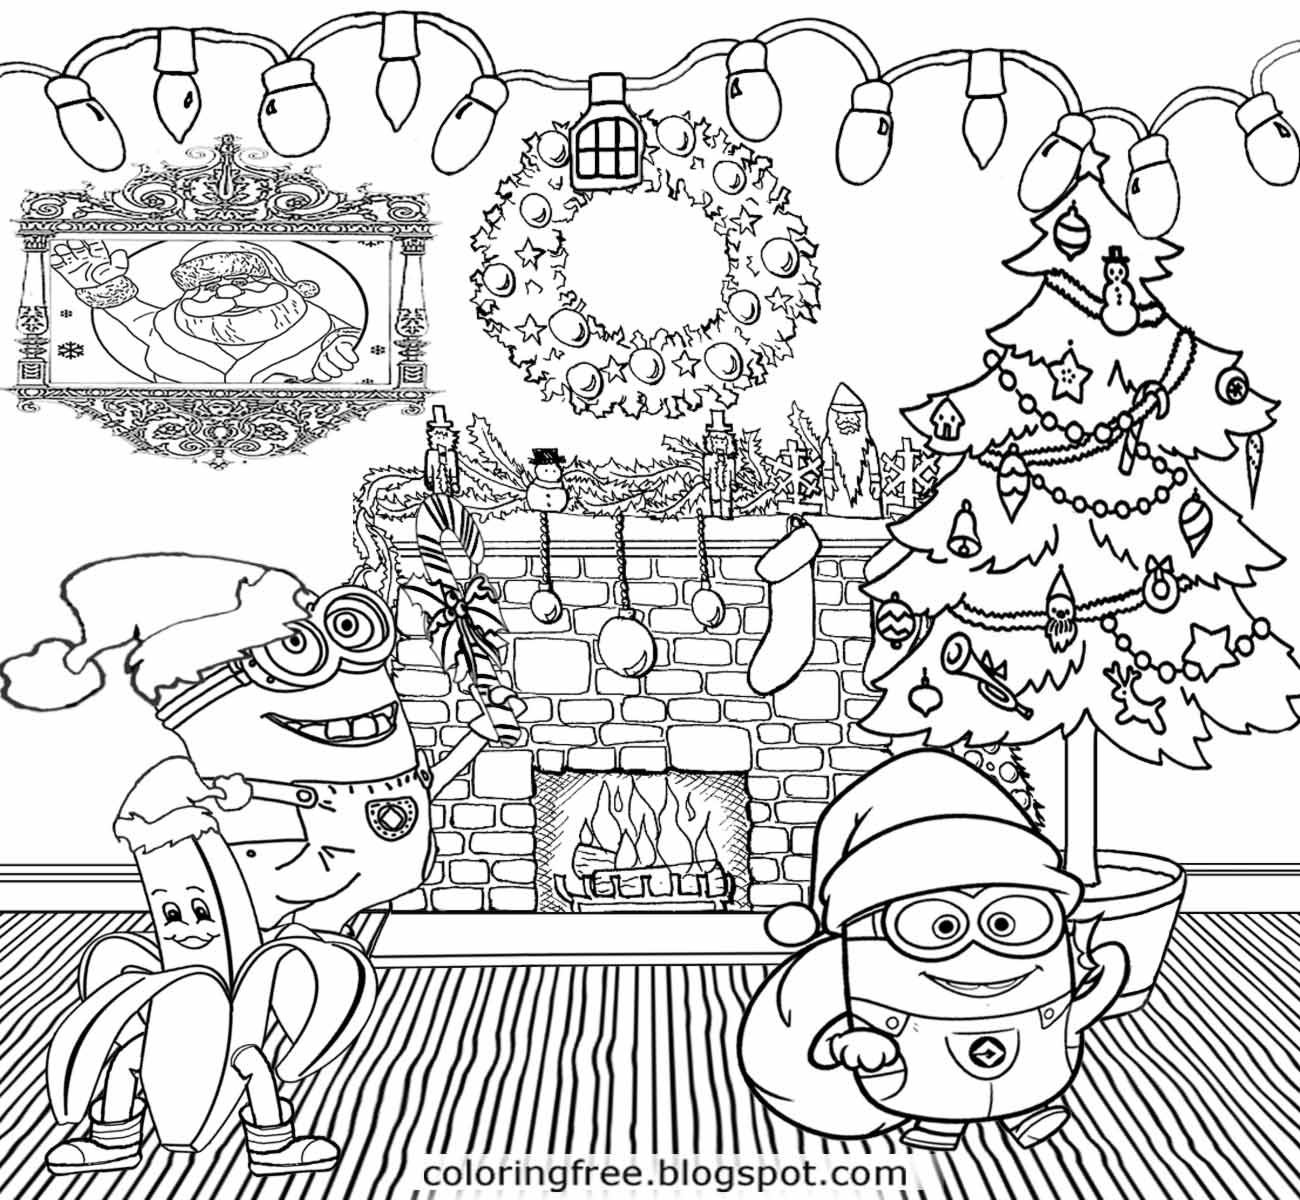 Christmas Minion Coloring Pages With Holiday Decorations Merry Minions Cool